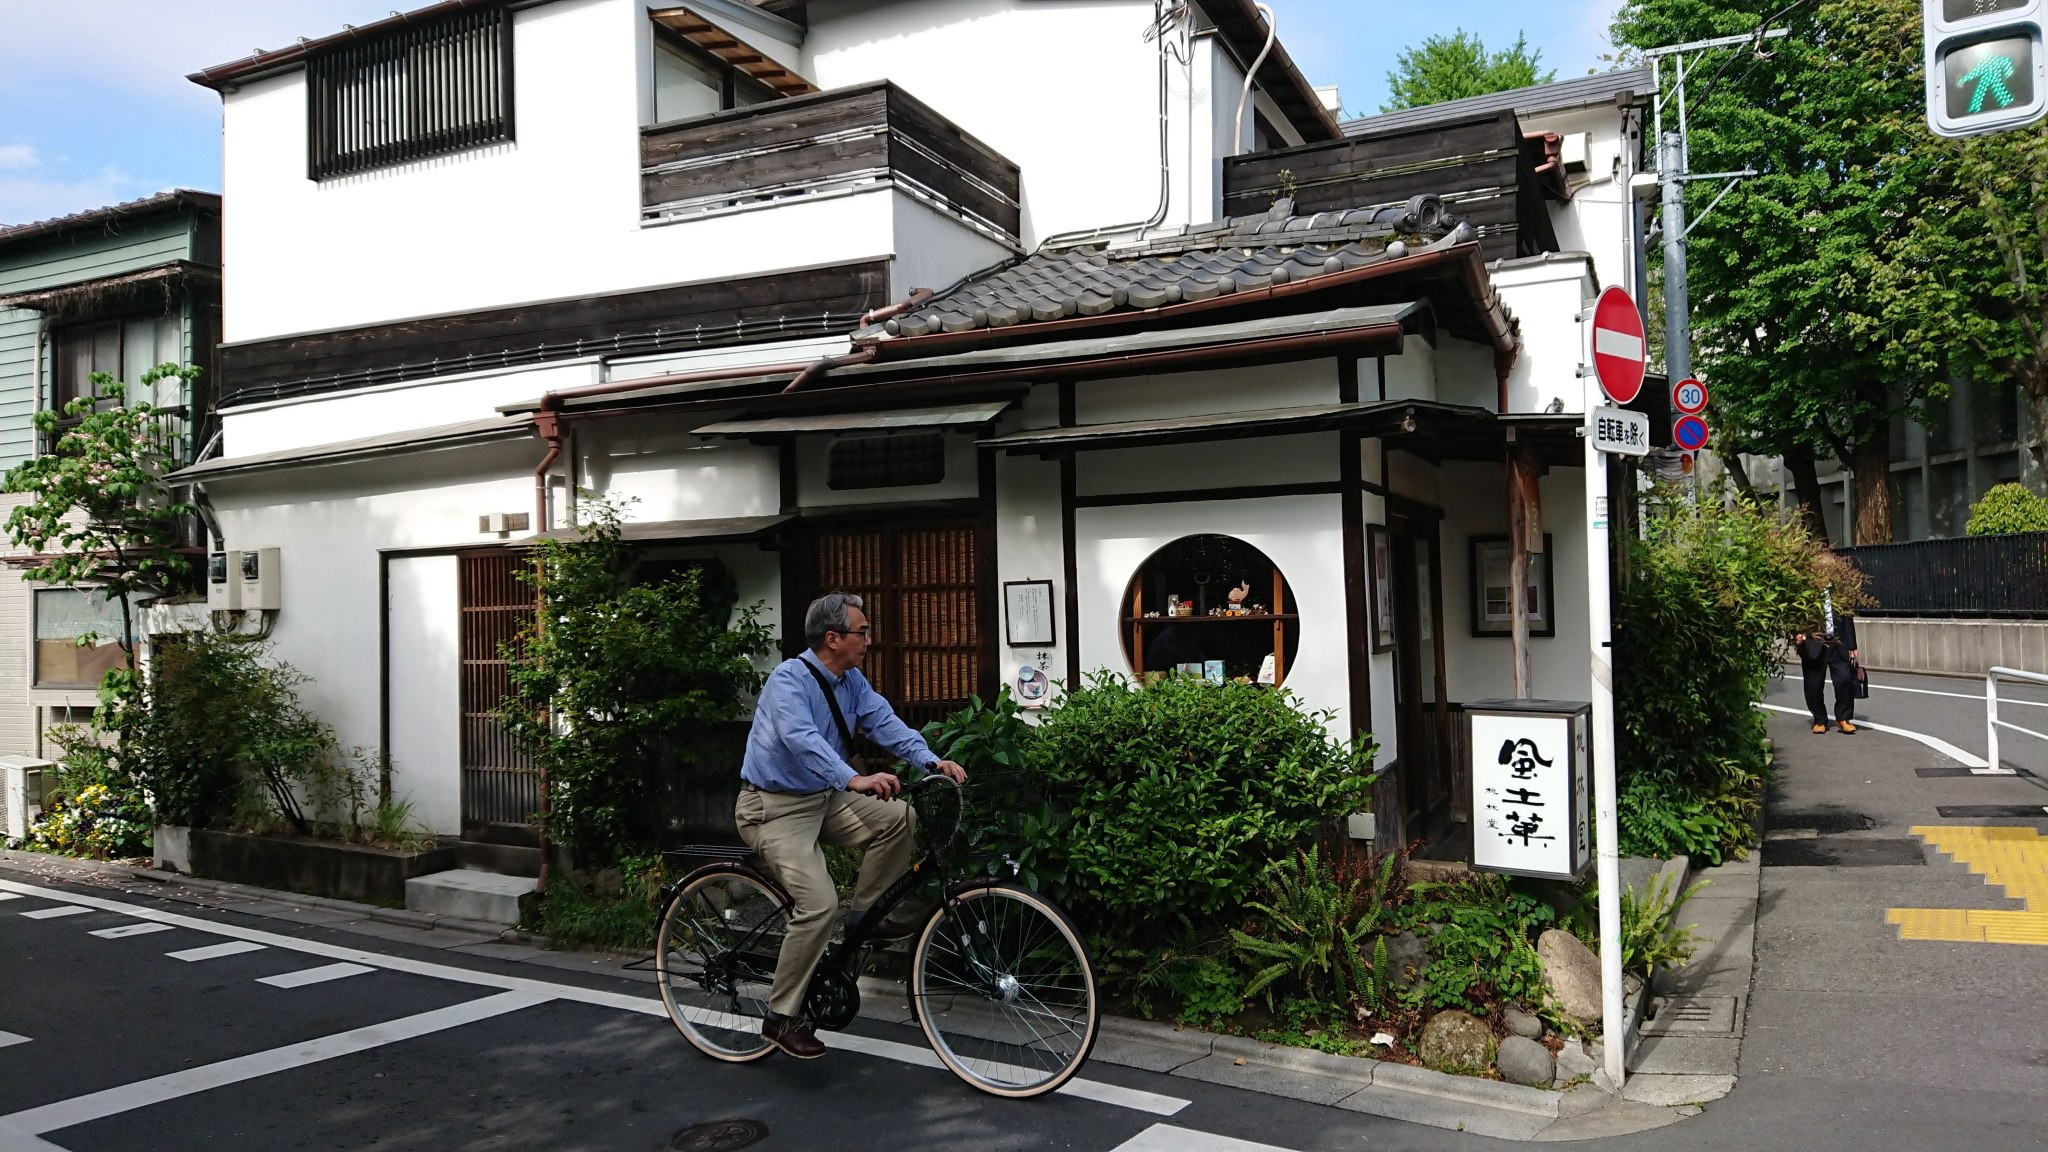 A middle-aged man in shirt and chinos rides his bike through a quiet old neighbourhood